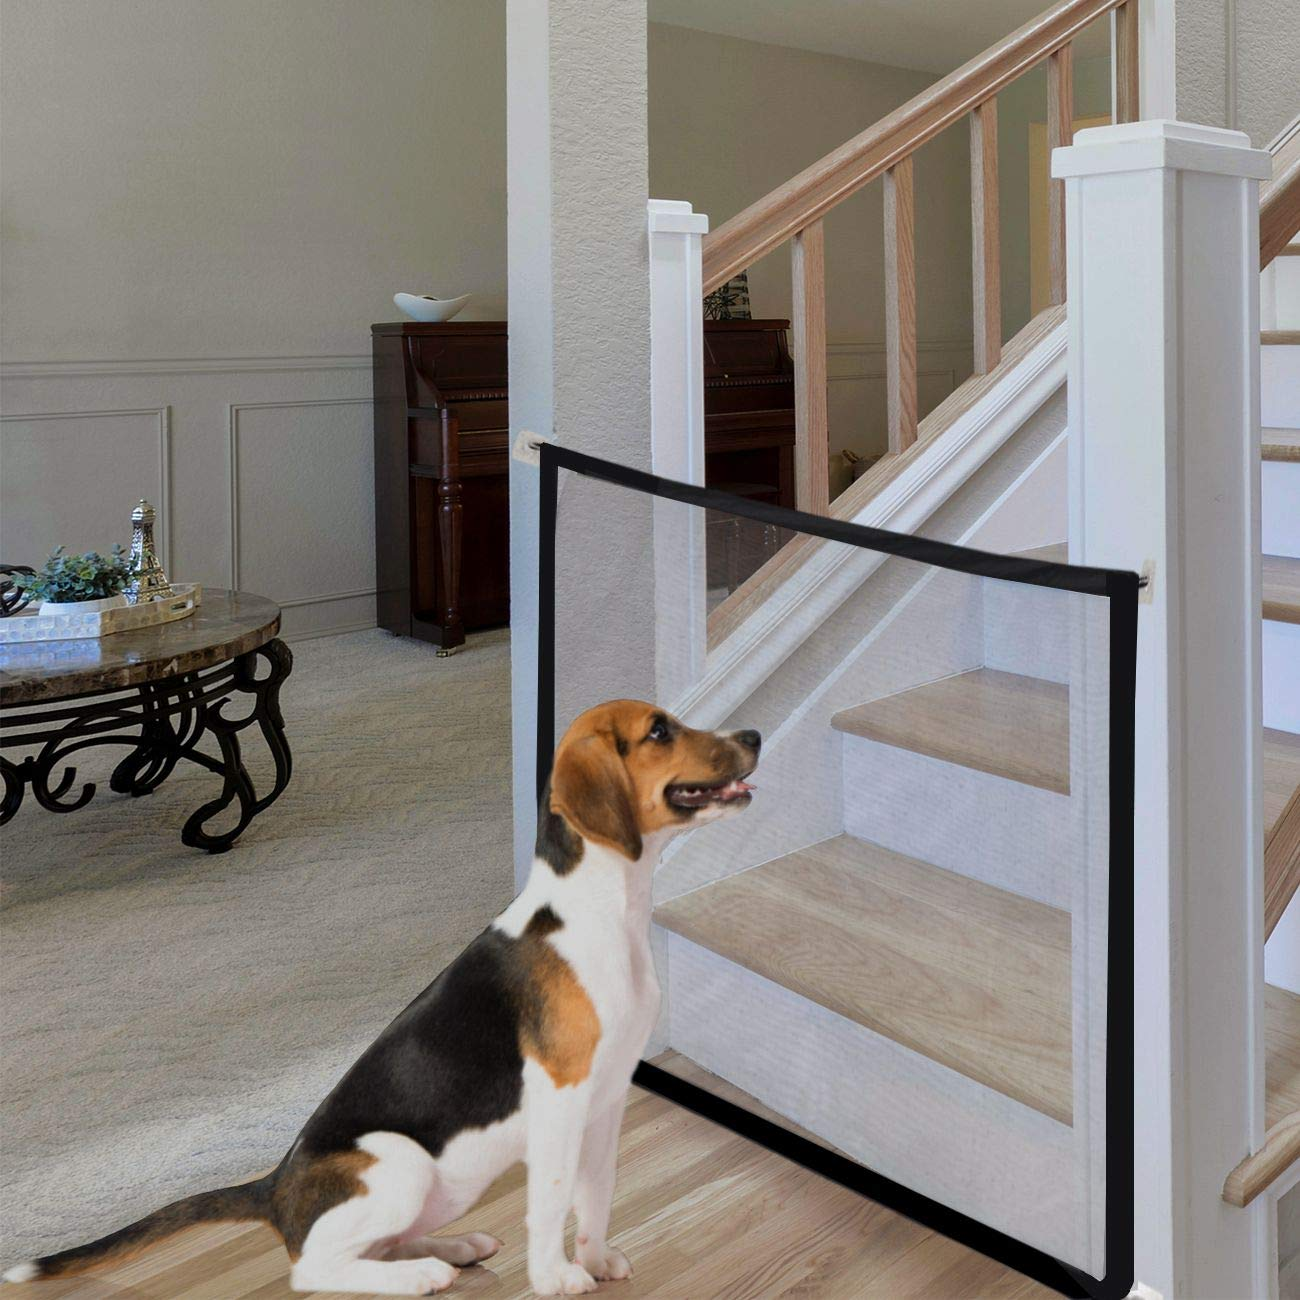 Magic Gate for Dog, Portable Folding Mesh Gate, Safety Guard for Pet, Safety Fence for Baby, Safe Guard for Hall Doorway